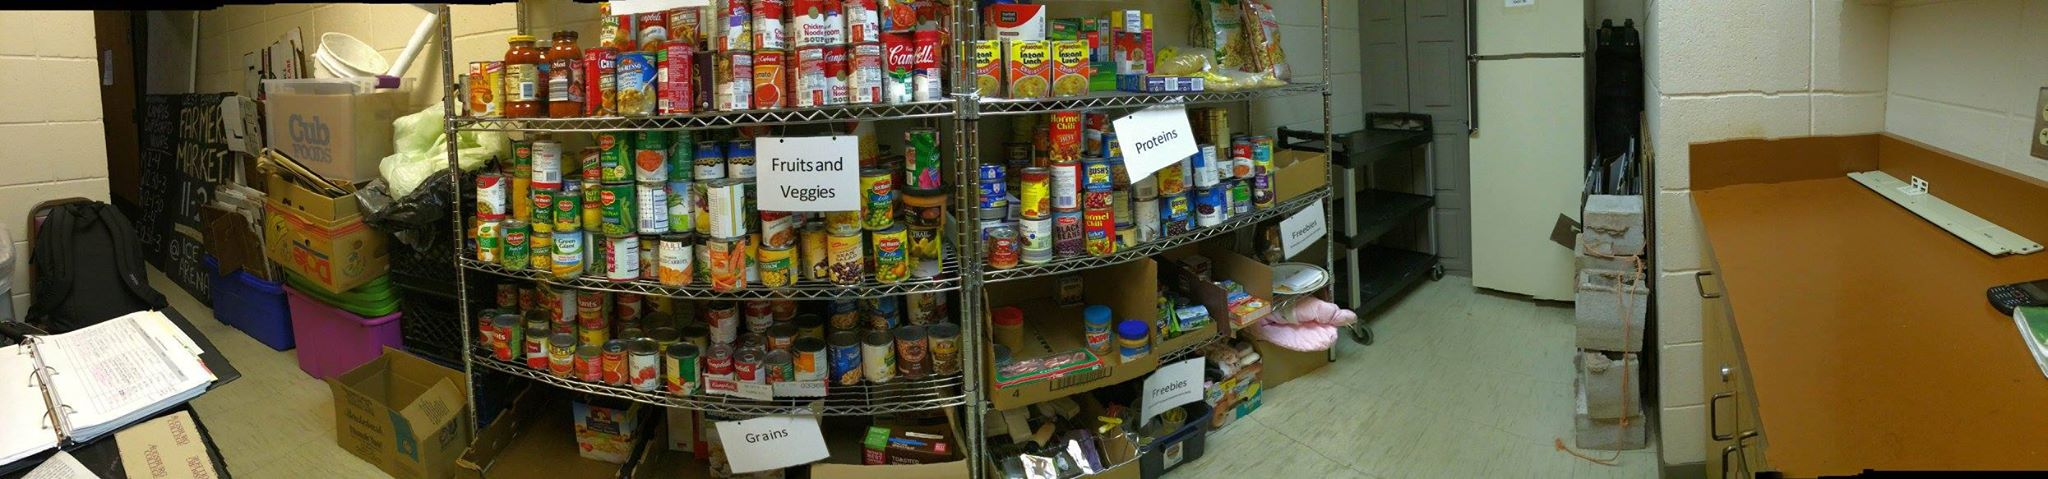 shelves with canned goods and label signs